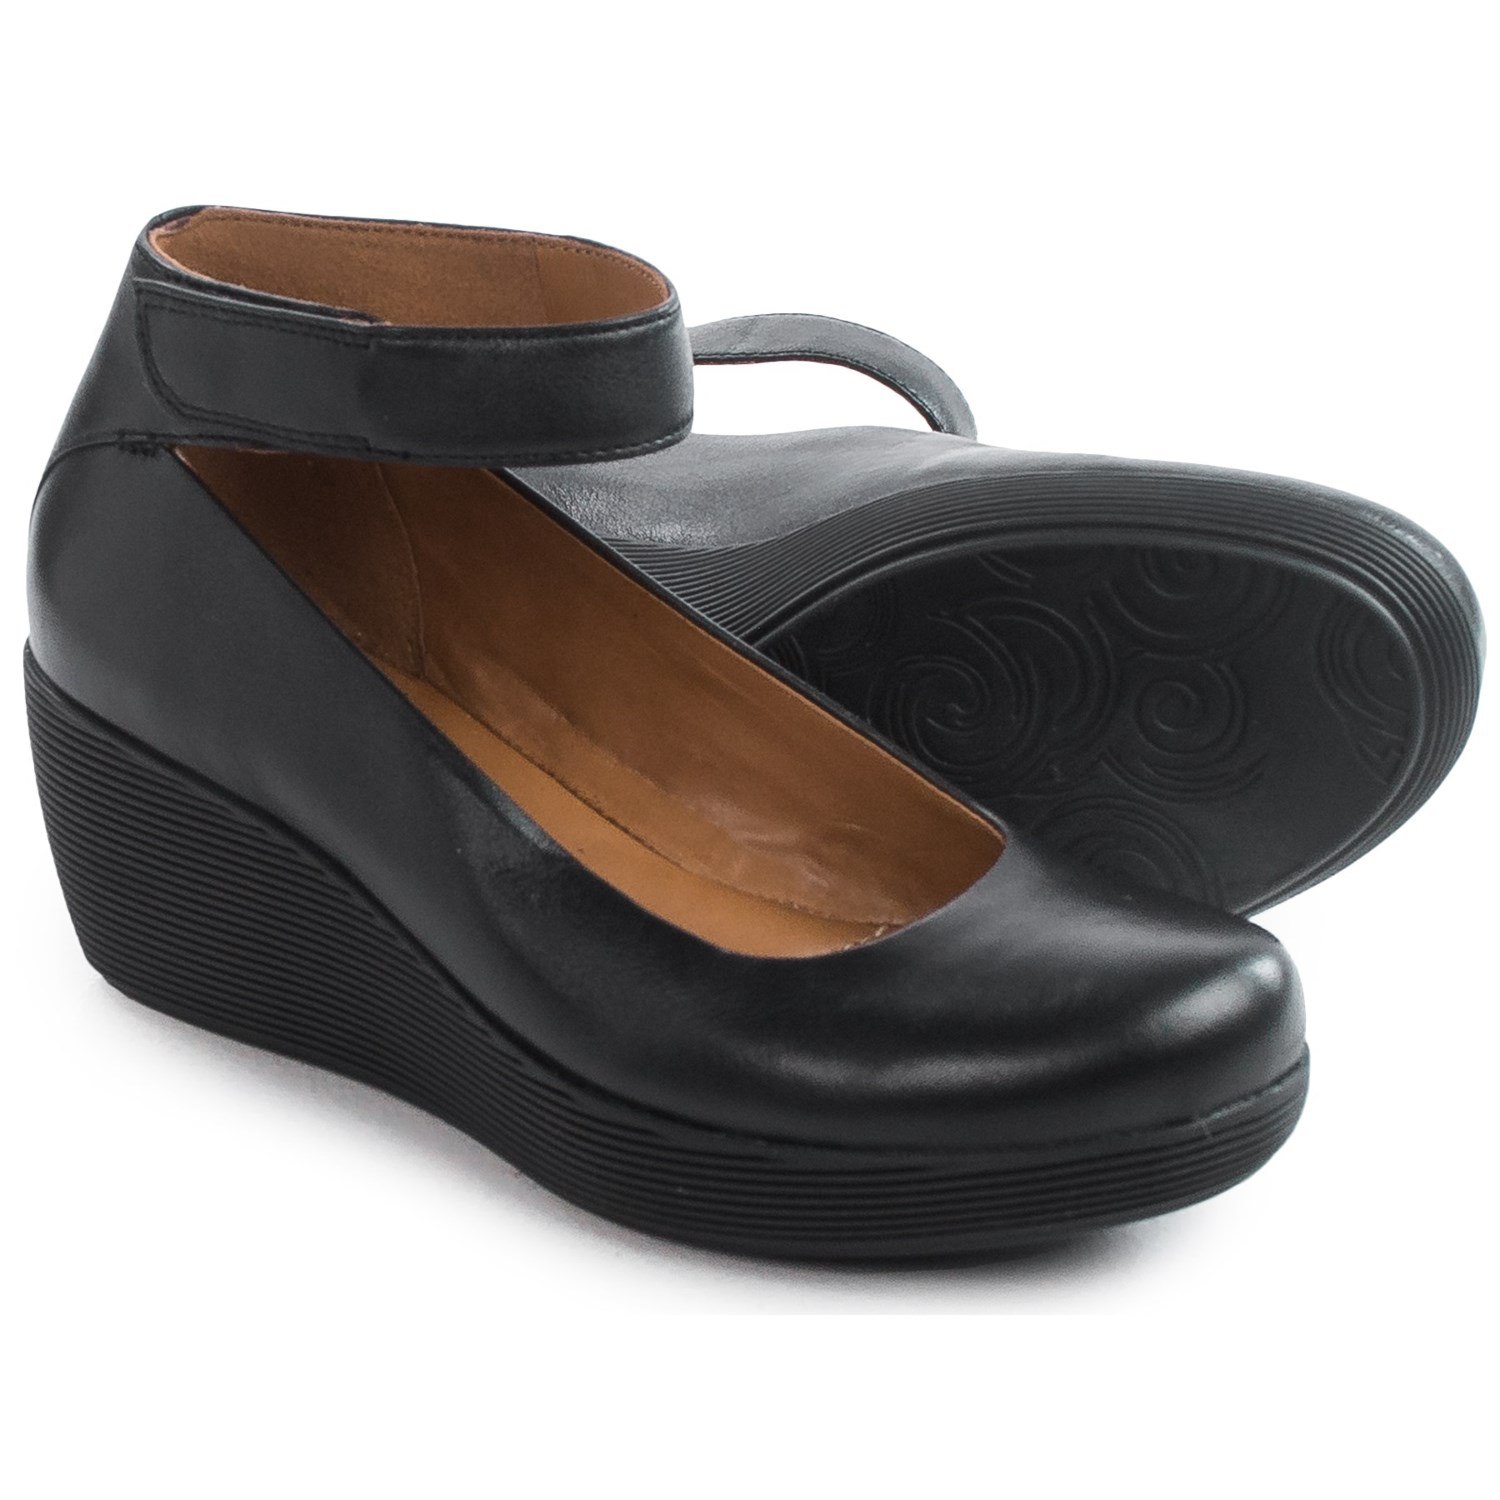 clarks claribel fame wedge shoes for save 53